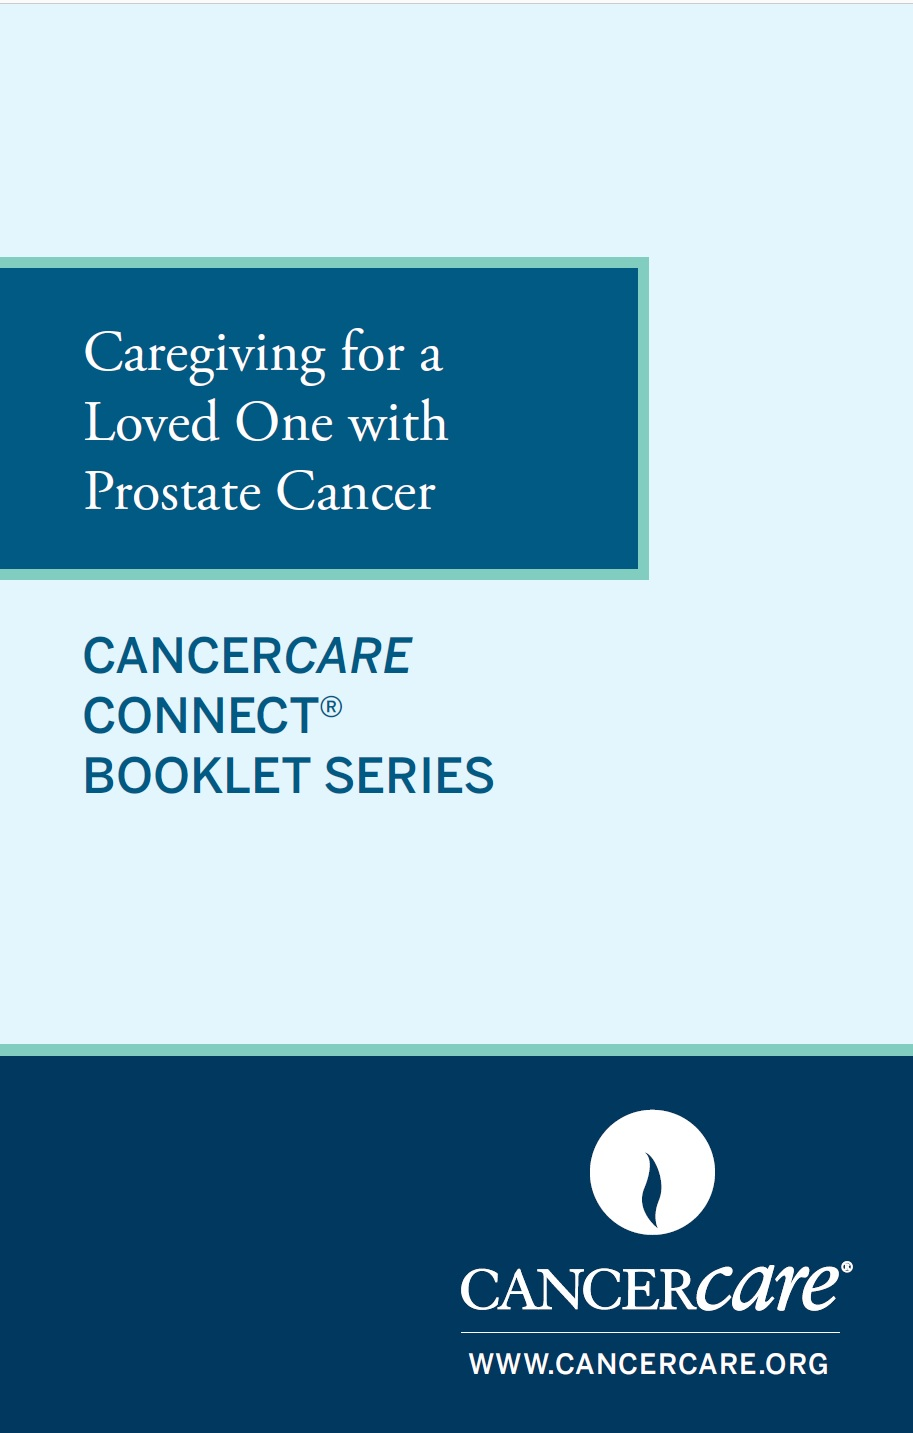 Thumbnail of the PDF version of Caregiving for a Loved One With Prostate Cancer